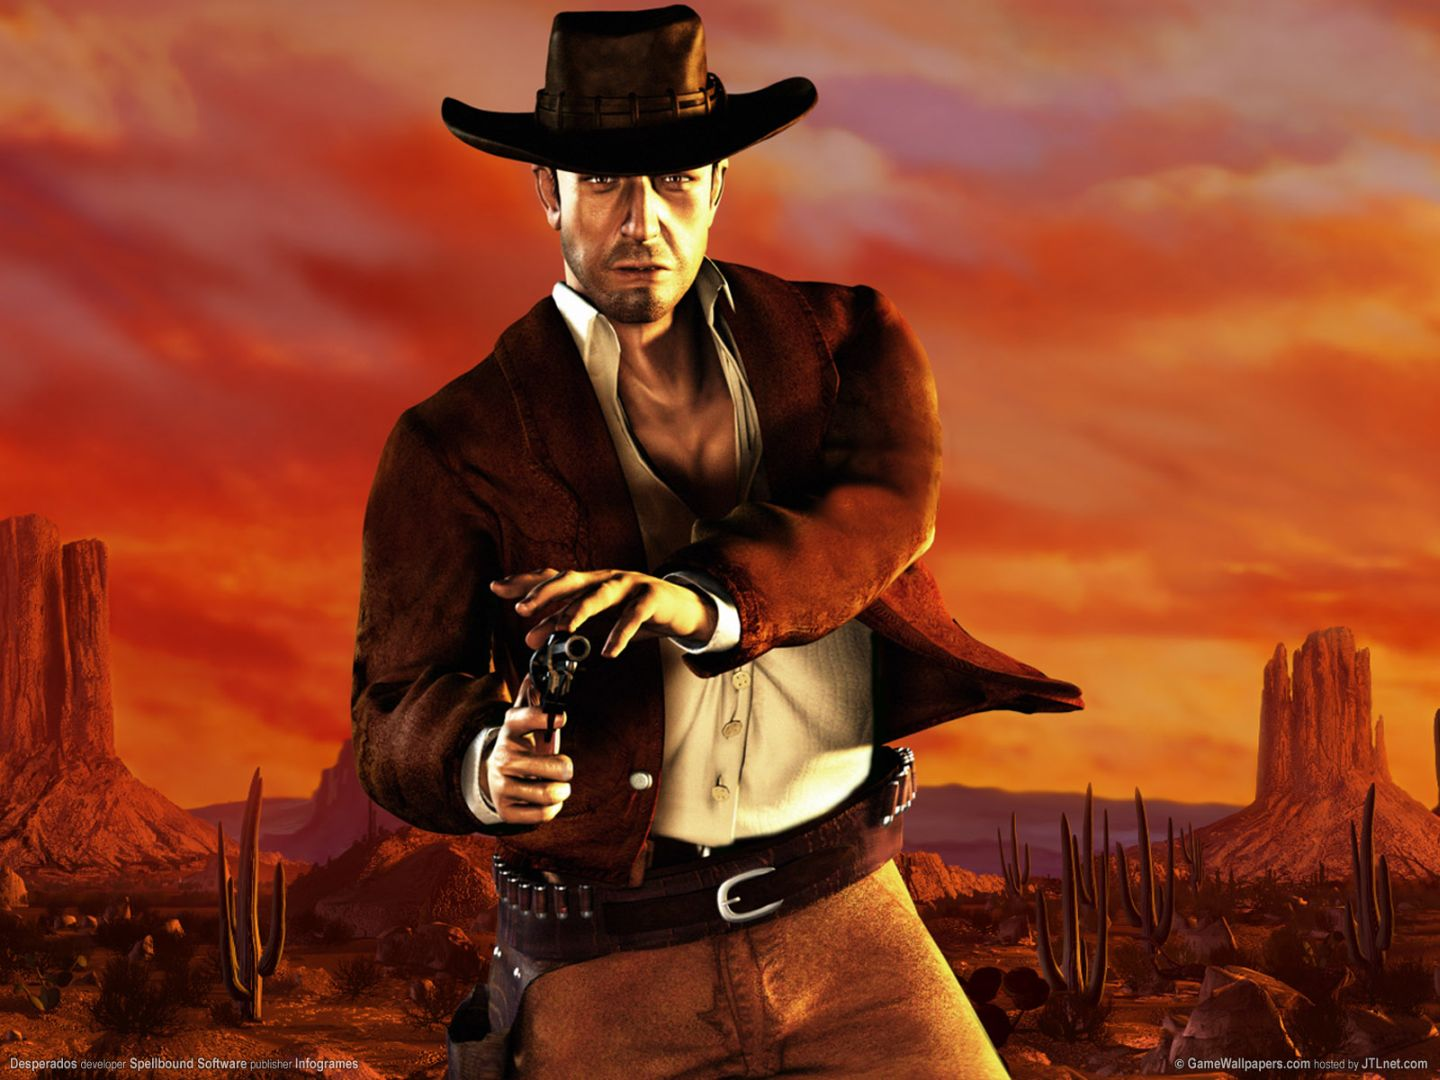 Desperados Wanted Dead Or Alive Image 322 New Game Network